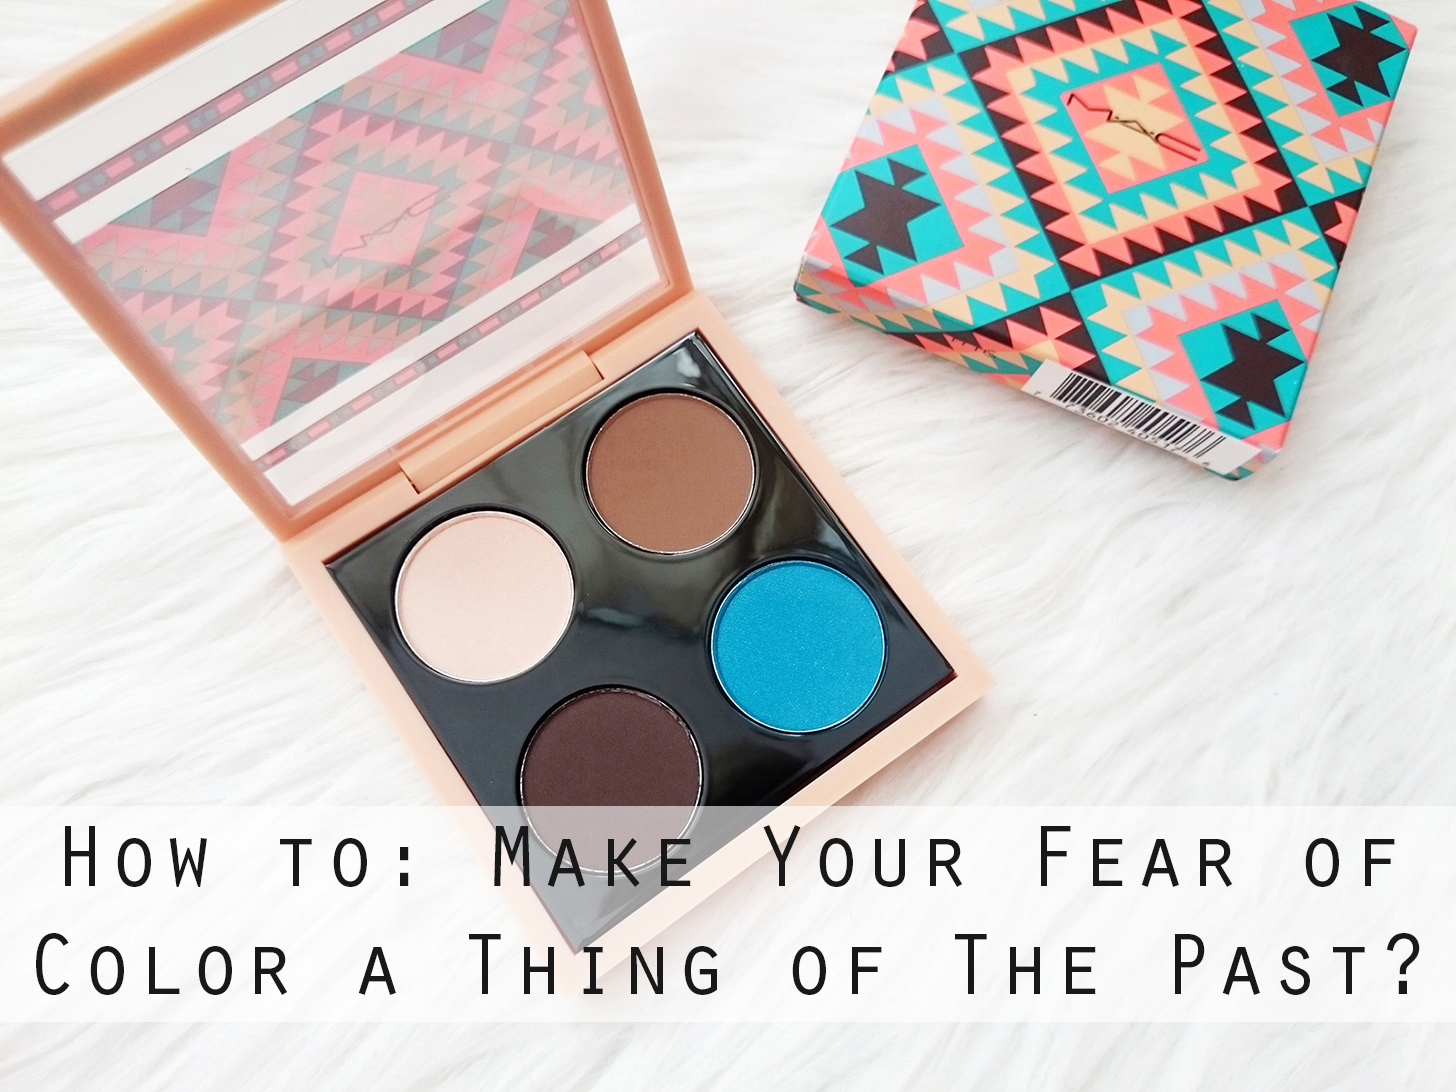 Make Your Fear Of Color A Thing Of The Past With These Simple Tips